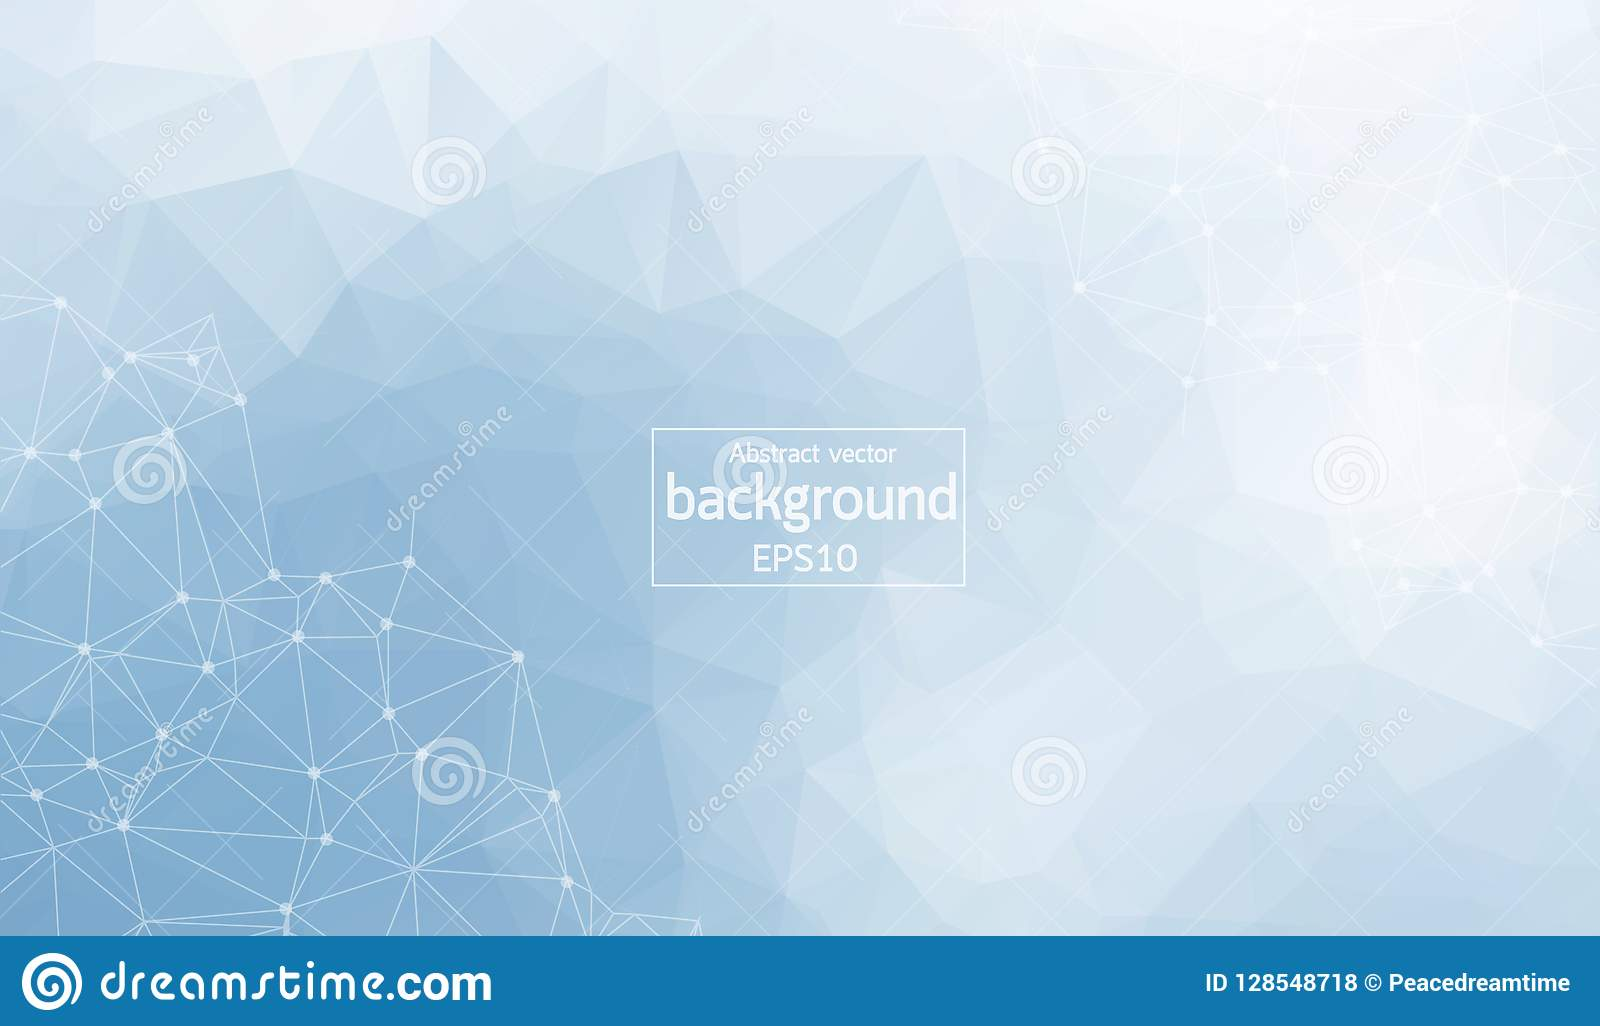 Polygonal Abstract background. Low poly, molecule and communication with connected dots and lines. Vector Illustration.